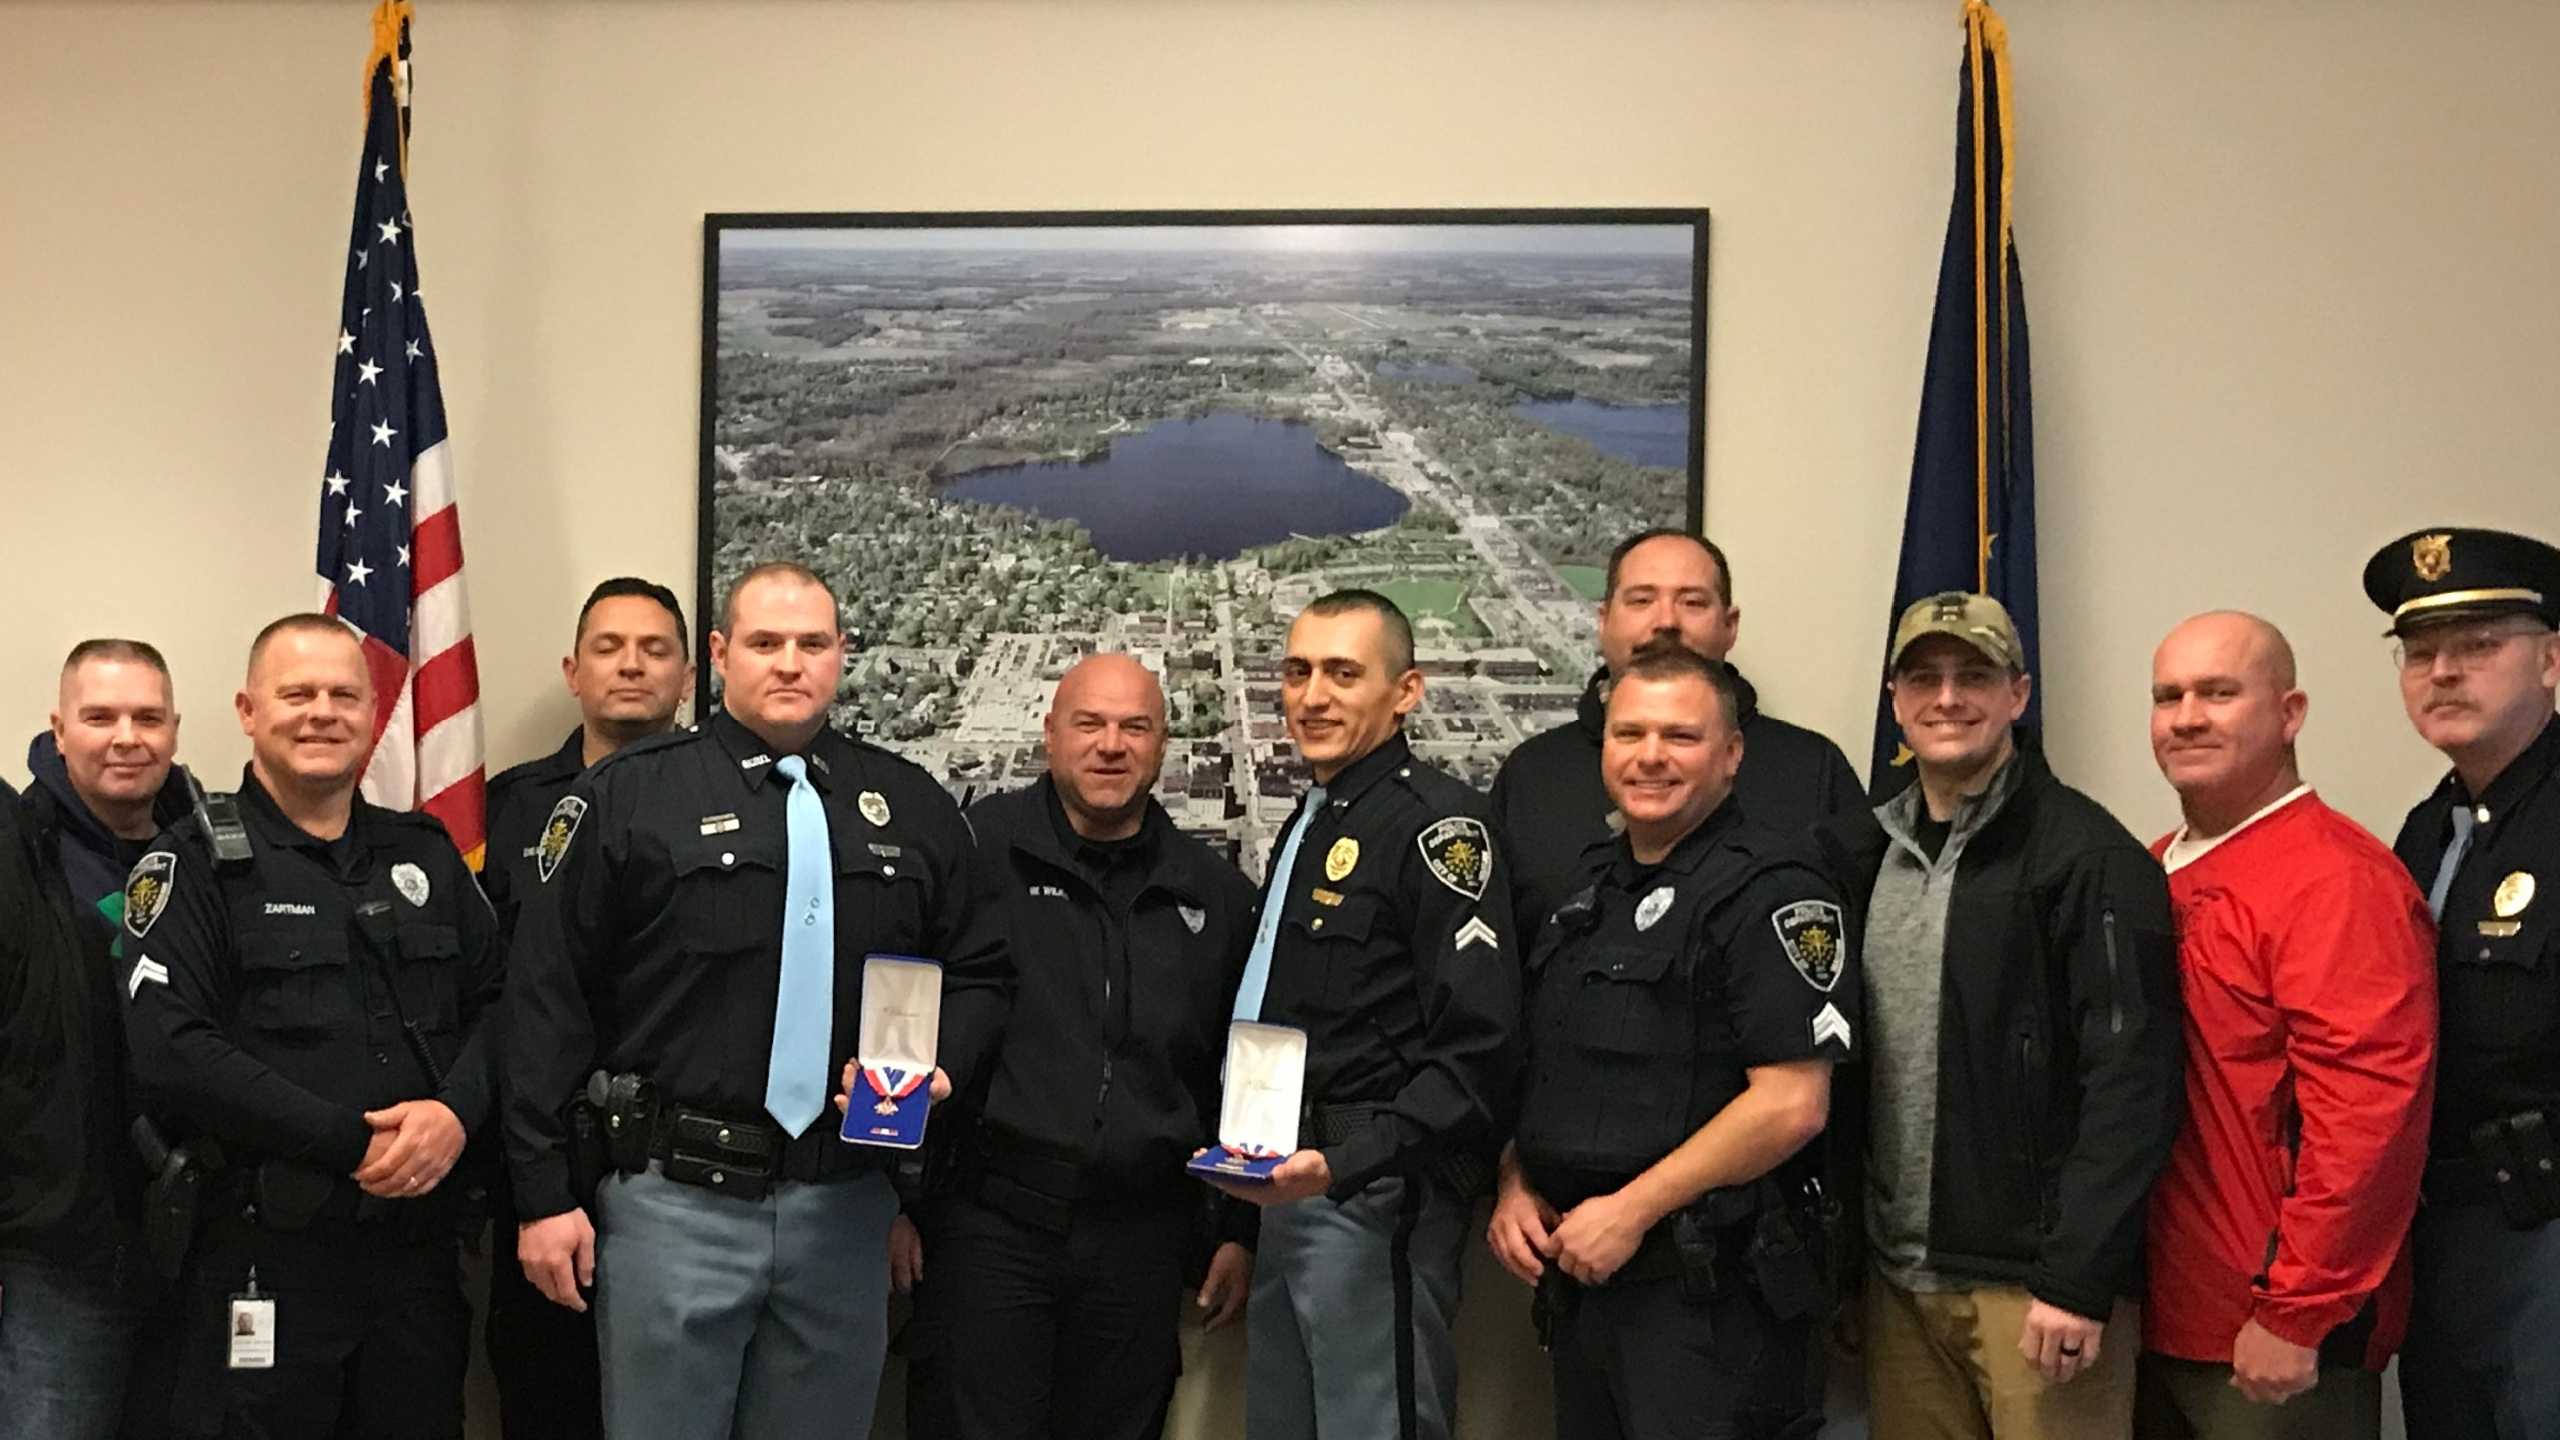 warsaw officers honored